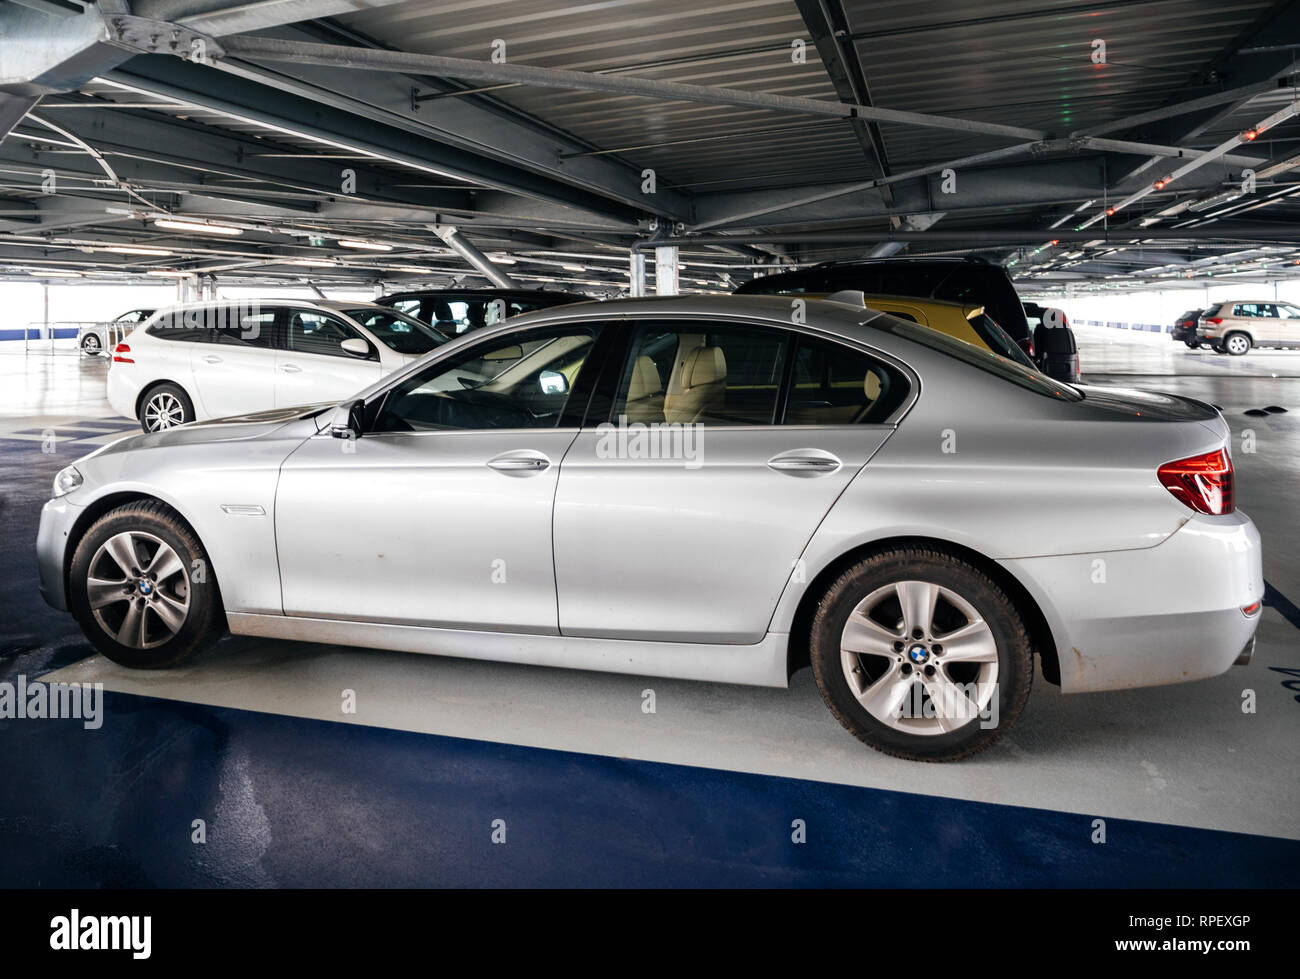 BASEL, SWITZERLAND - MAR 22, 2018: Luxury silver BMW parked inside modern Airport parking - Stock Image